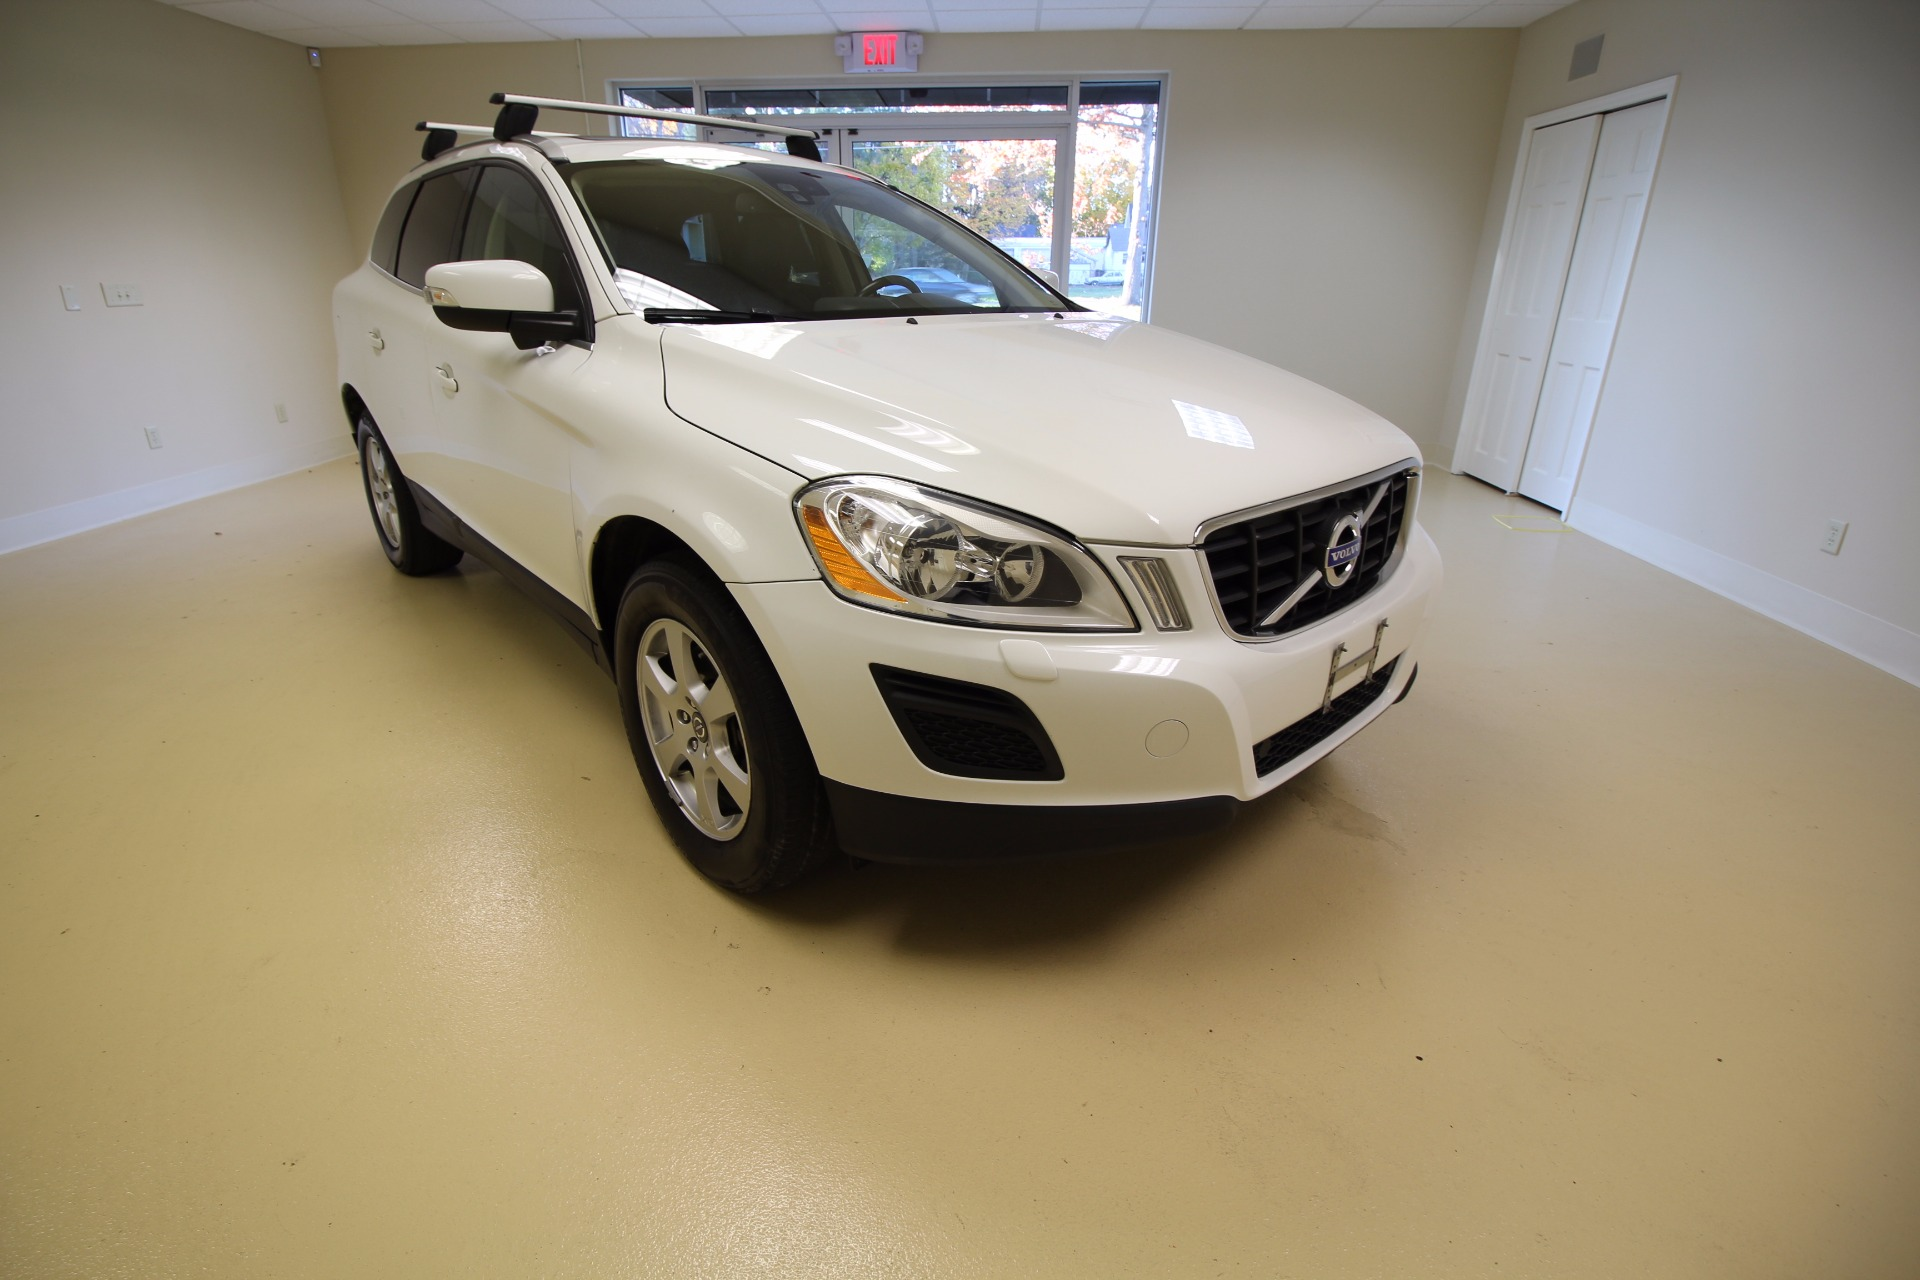 Volvo Albany Ny 2011 Volvo Xc60 32 Awd Superb Conditionsuper Clean Stock 16300